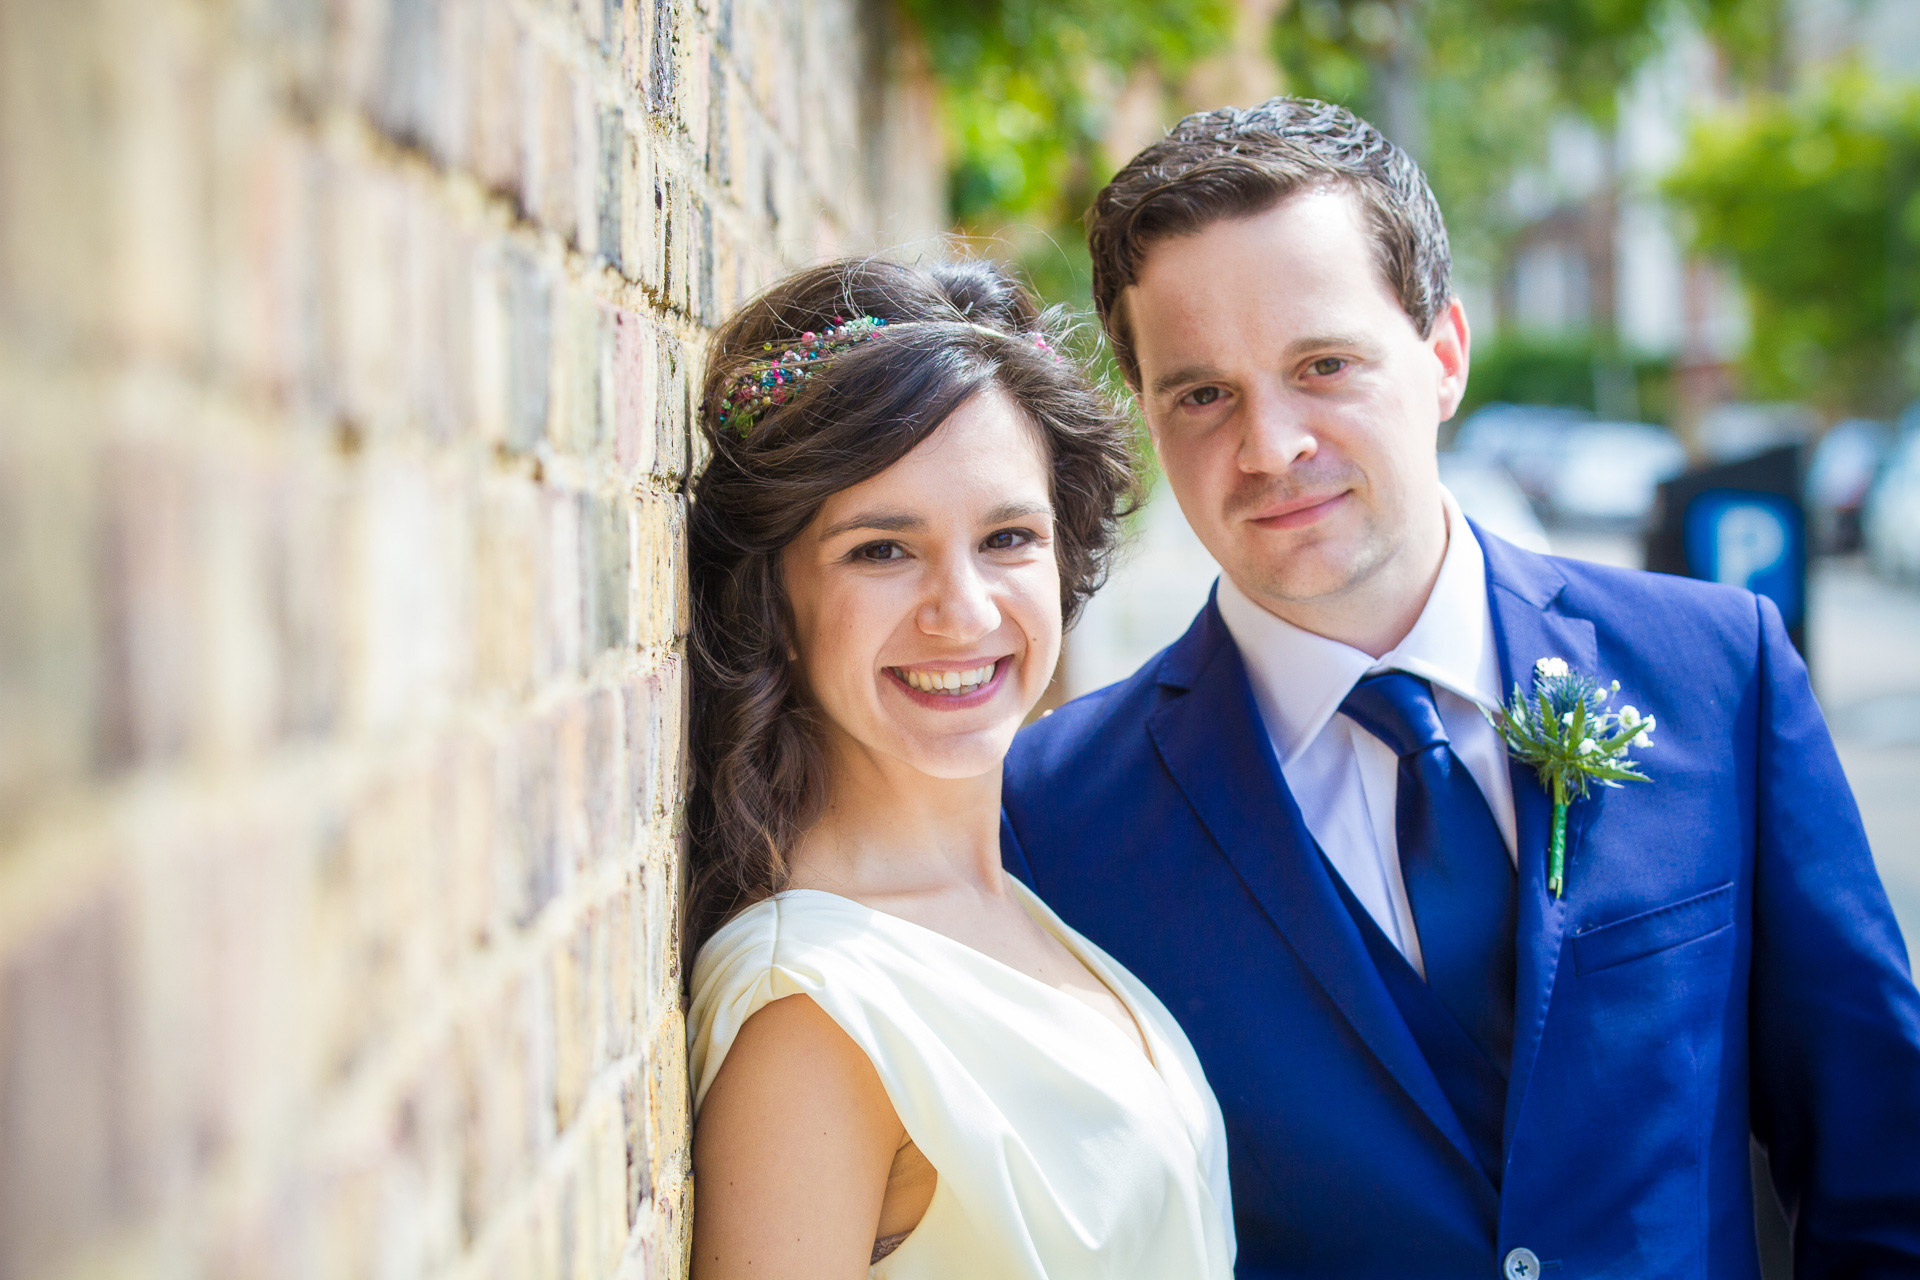 Emma & John - London Wedding